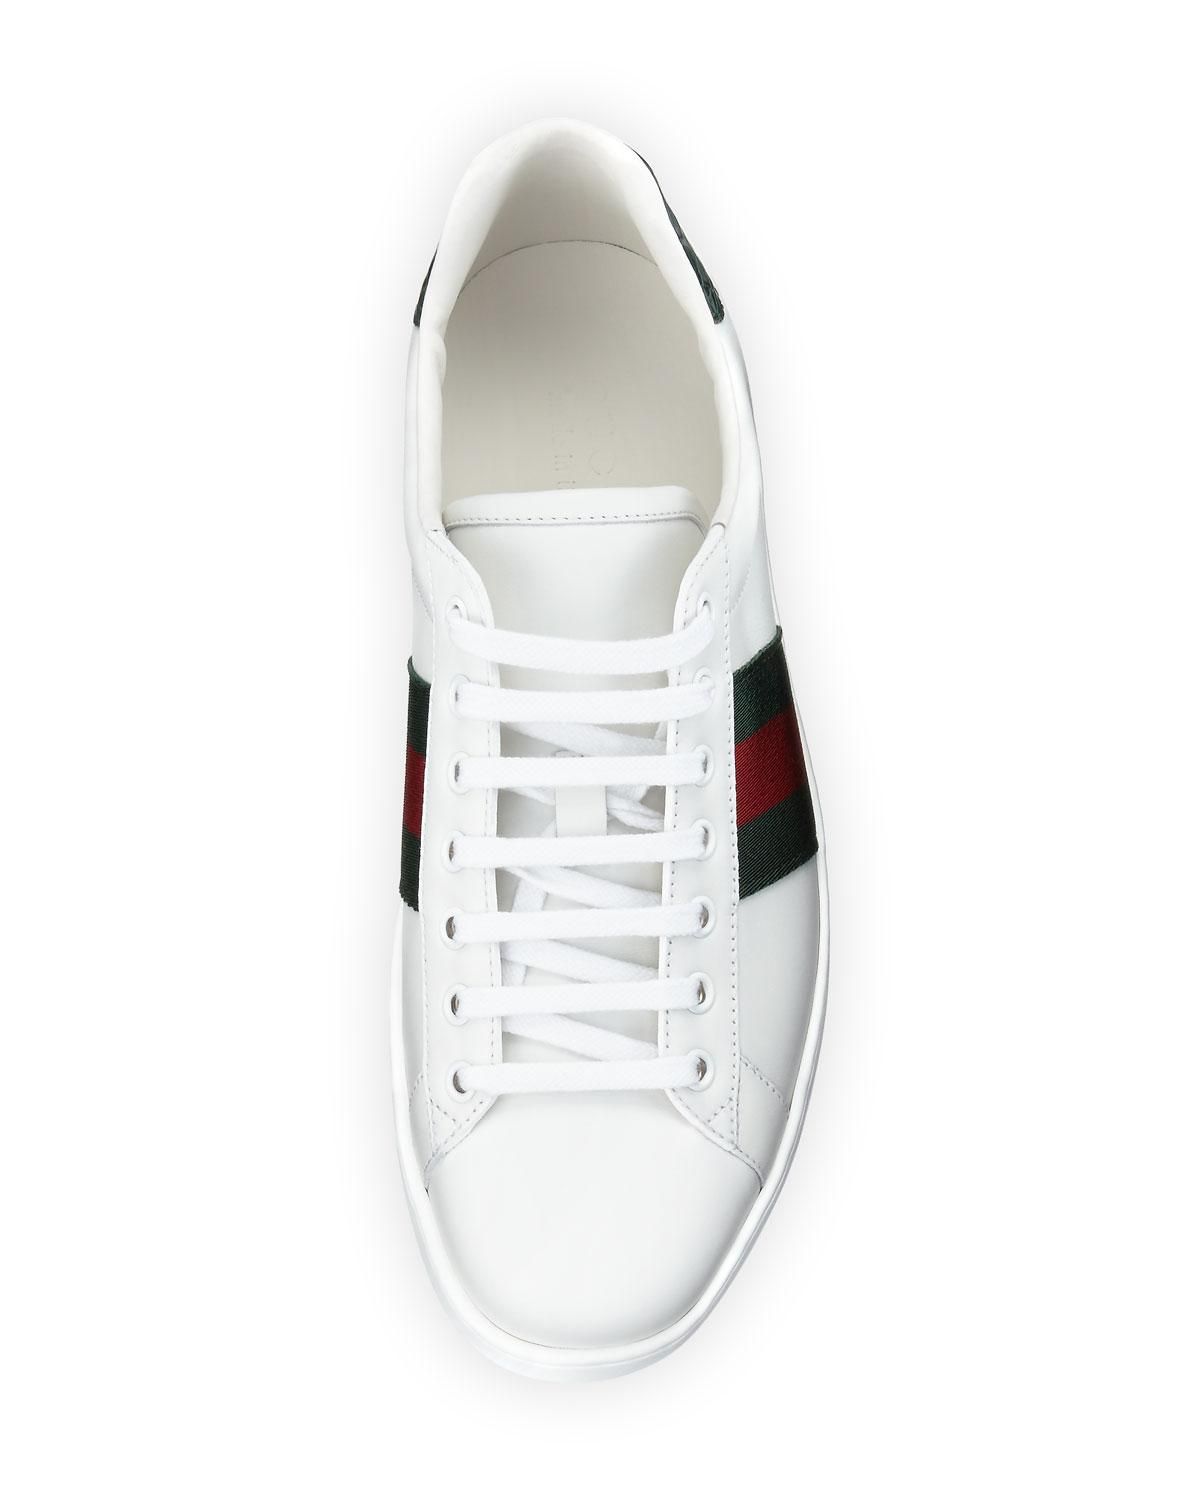 836428b5aea Lyst - Gucci Men s New Ace Leather Low-top Sneakers in White